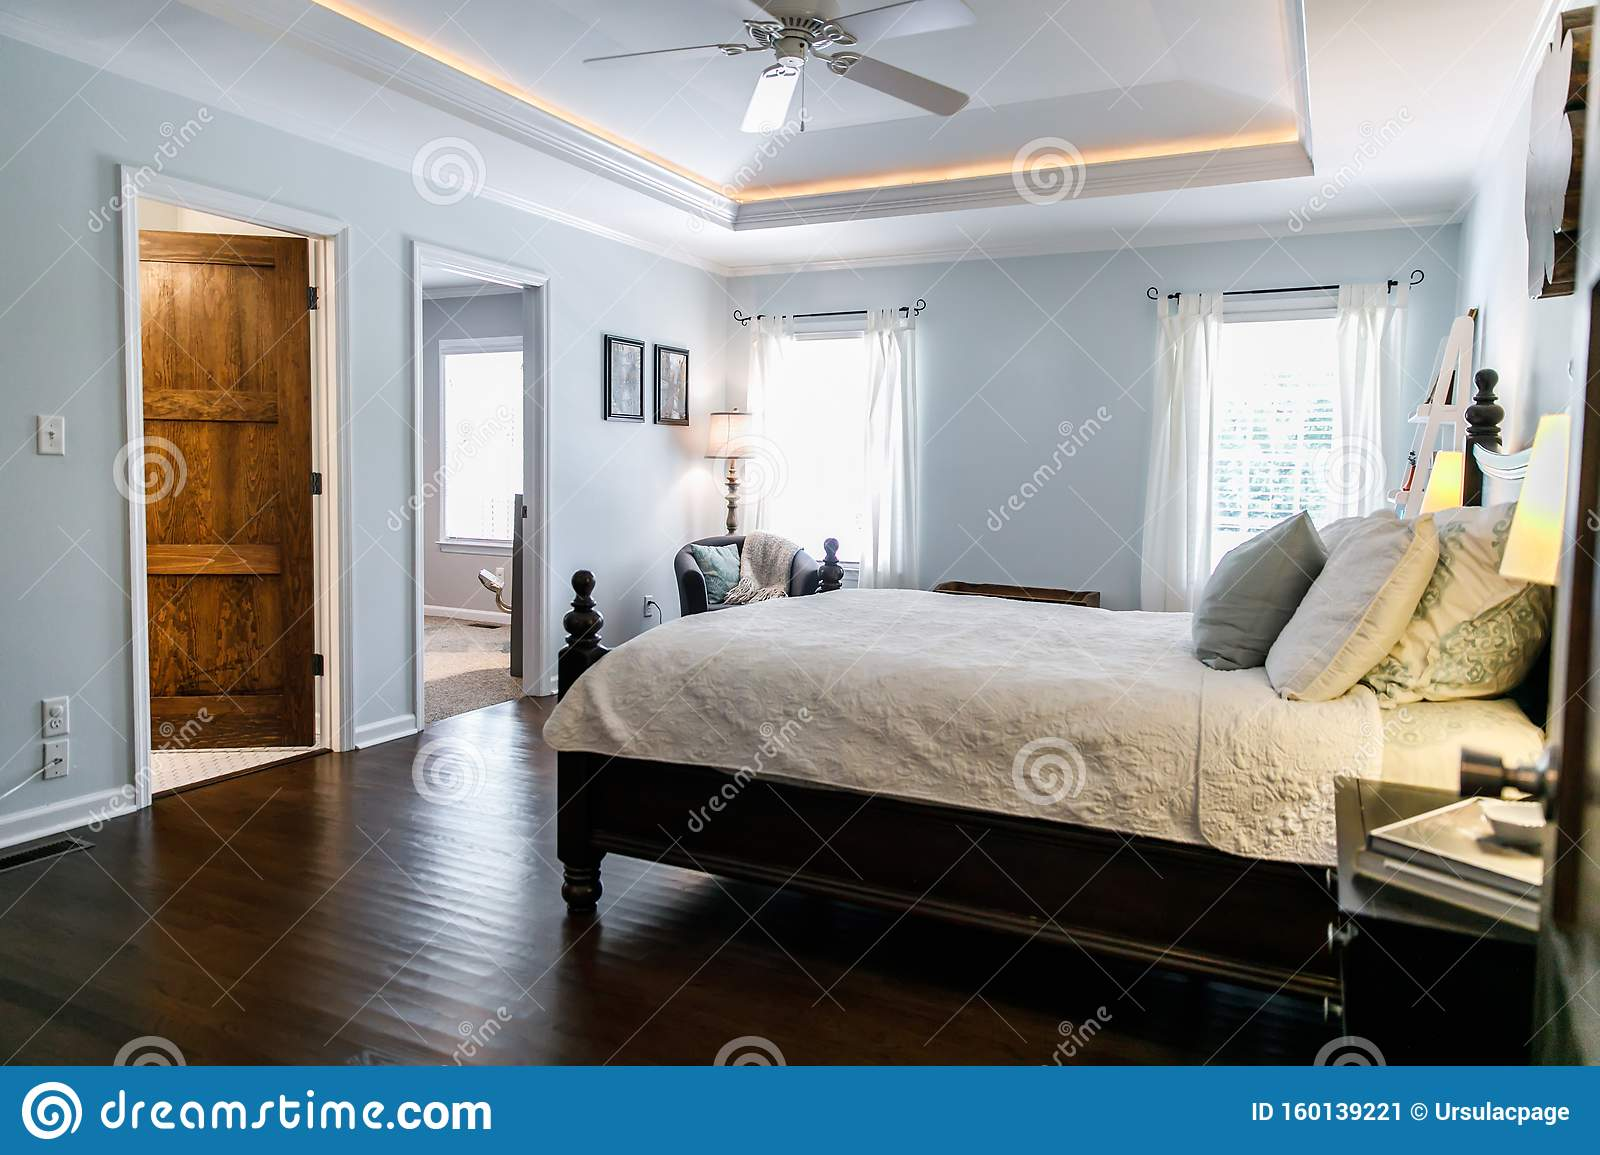 Master Bedroom With King Size Bed And Tray Ceilings With